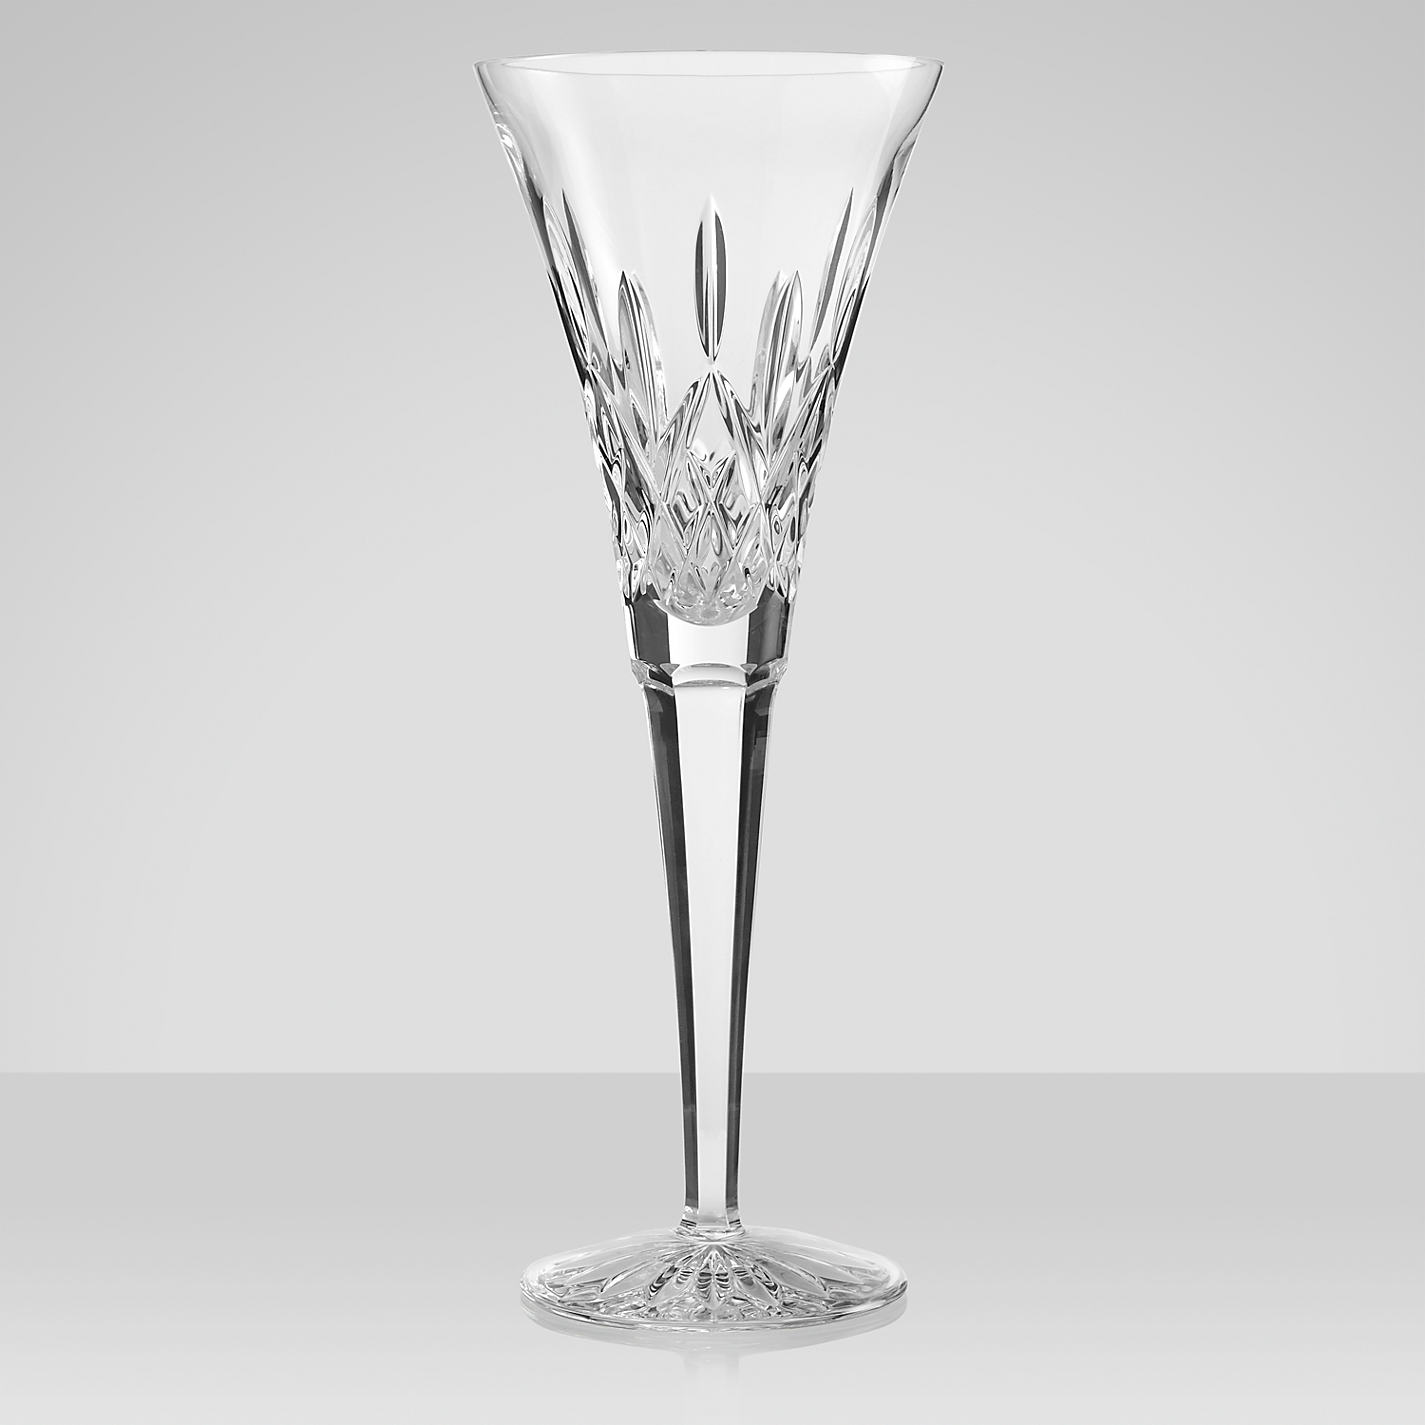 Captivating Waterford Crystal Patterns For Dining Sets Ideas With Waterford Crystal Glass Patterns